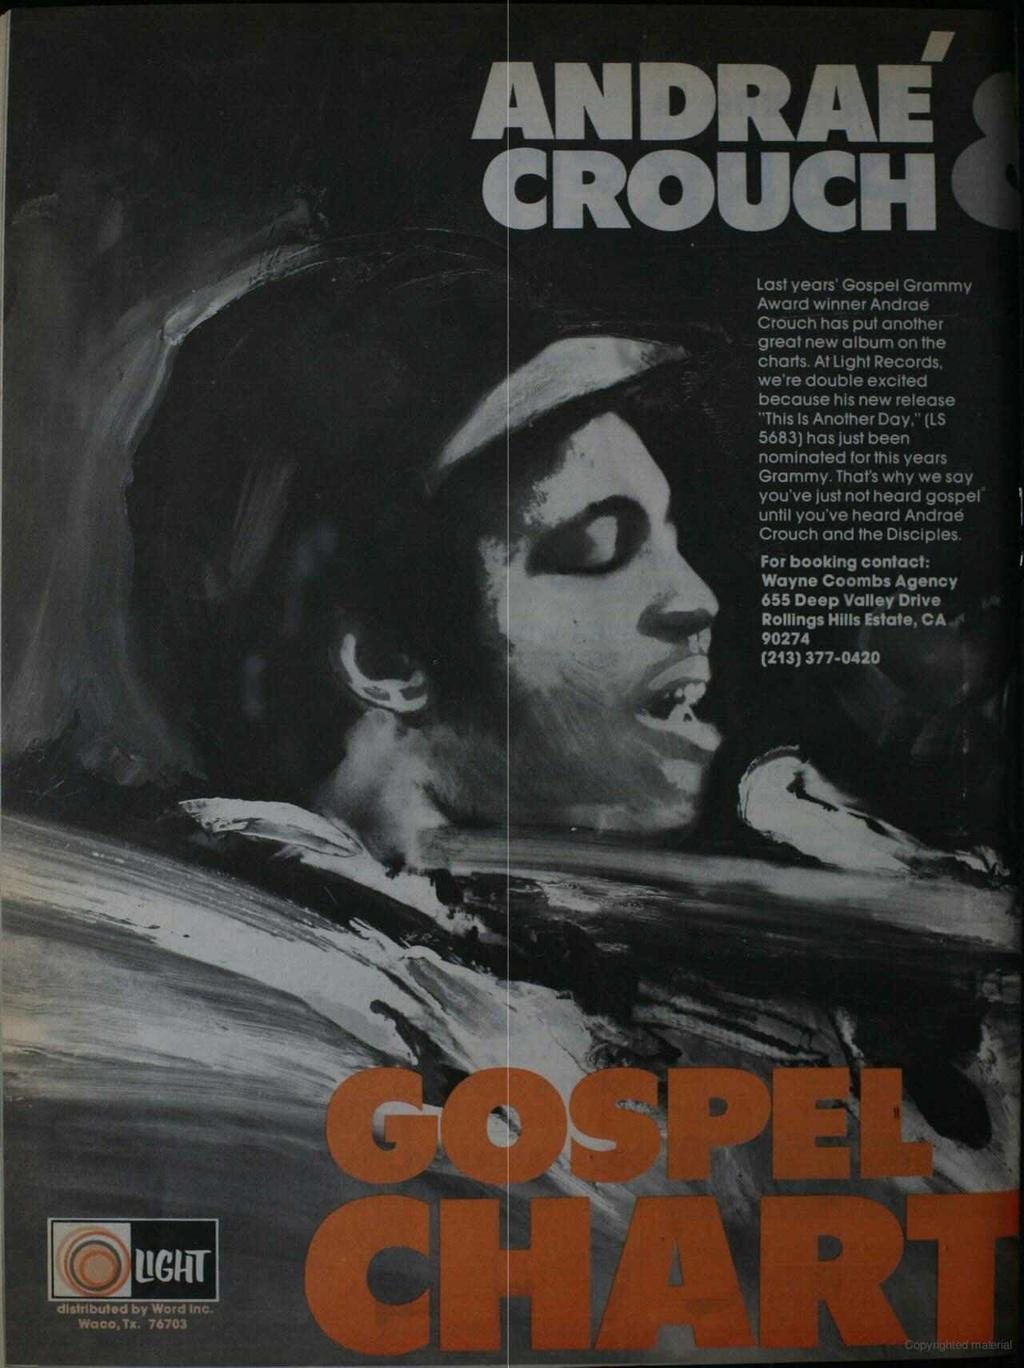 ANDRA! ROUCH i.. Last years' Gospel Grammy Award winner Andrae Crouch has put another great new album on the charts. At Light Records.